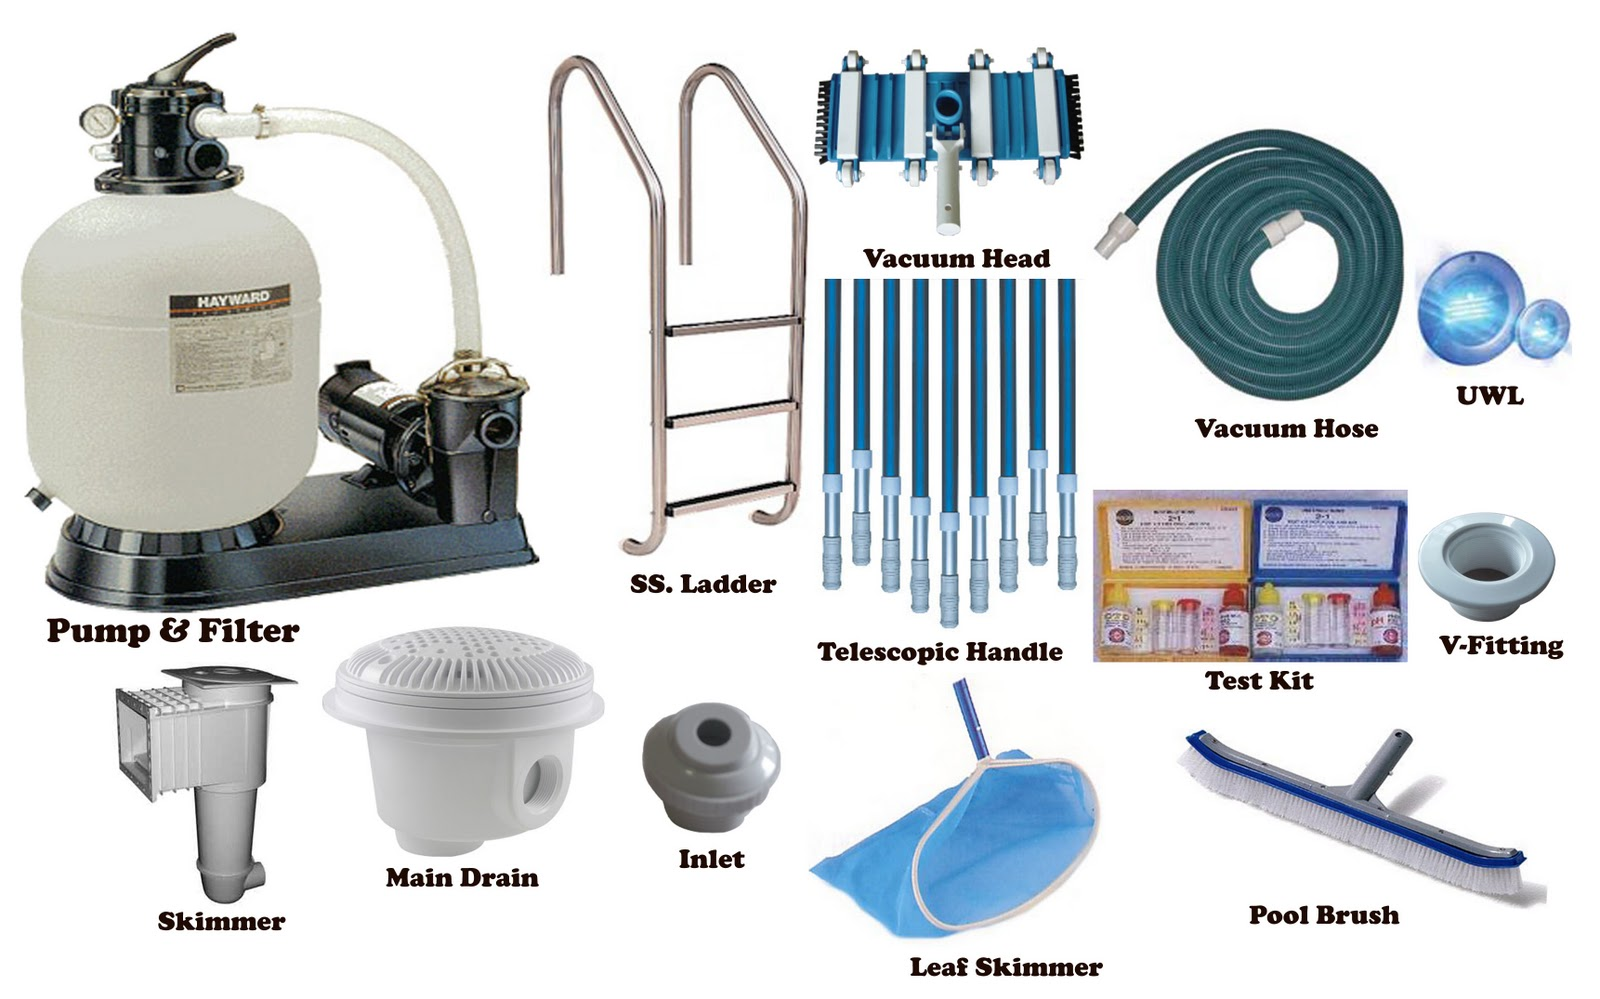 Swimming Pool Supplies Product : Swimming pool filter ozone uv system aquatic solutions